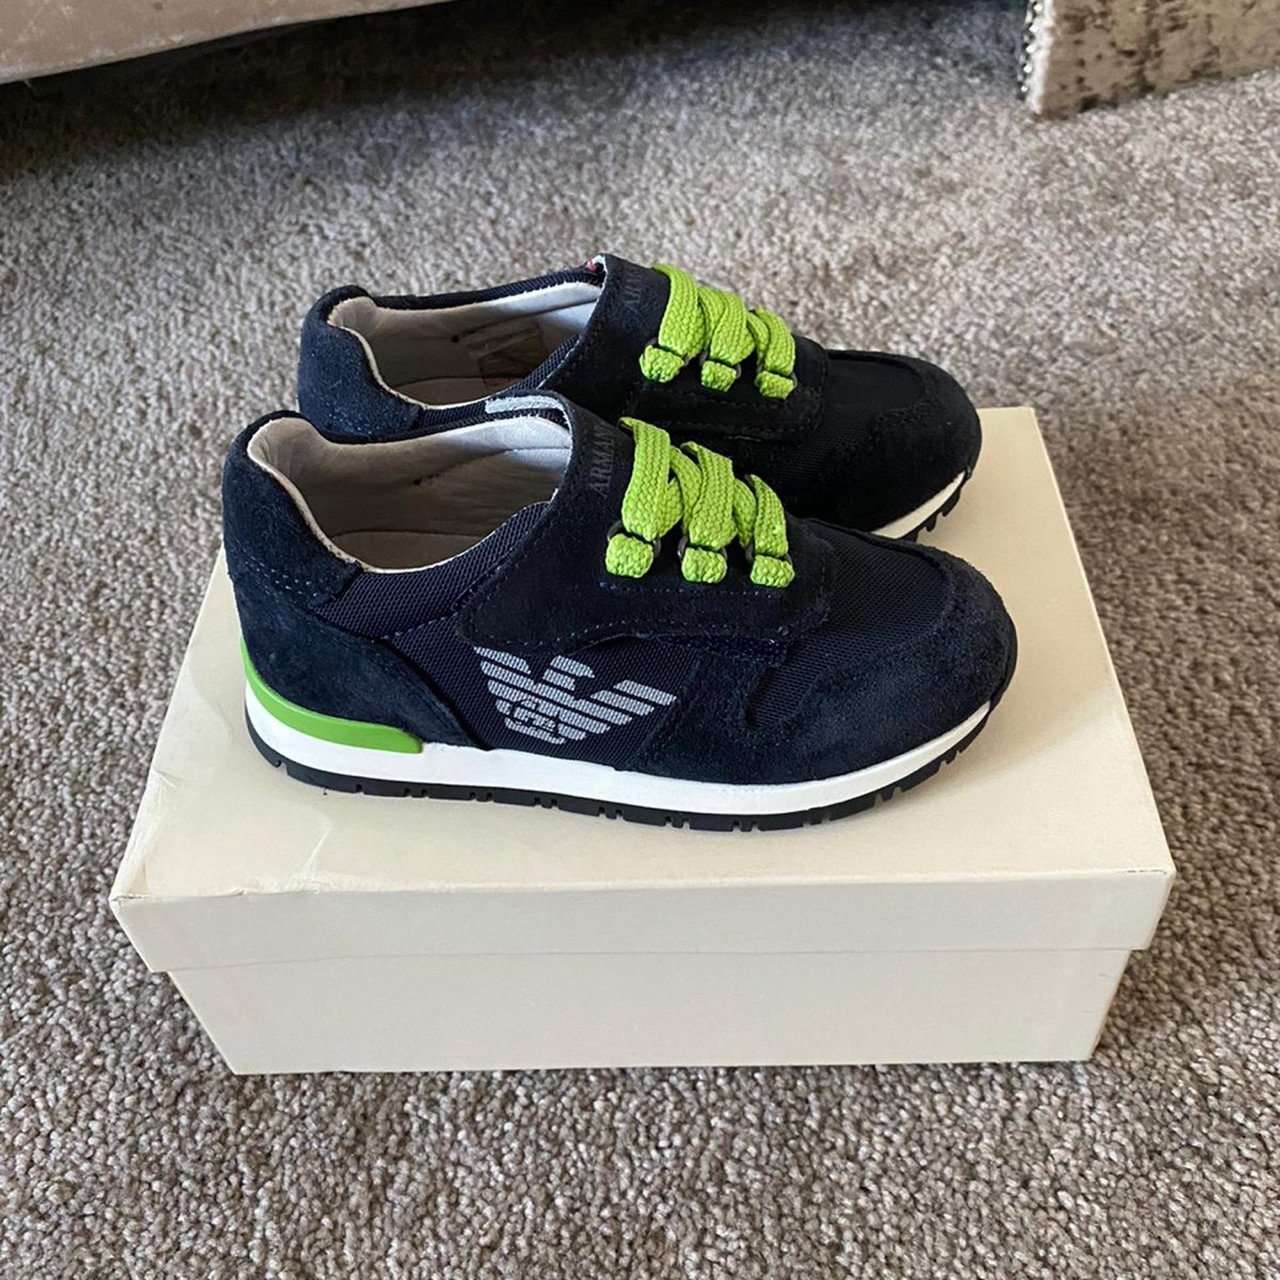 junior size 8 trainers